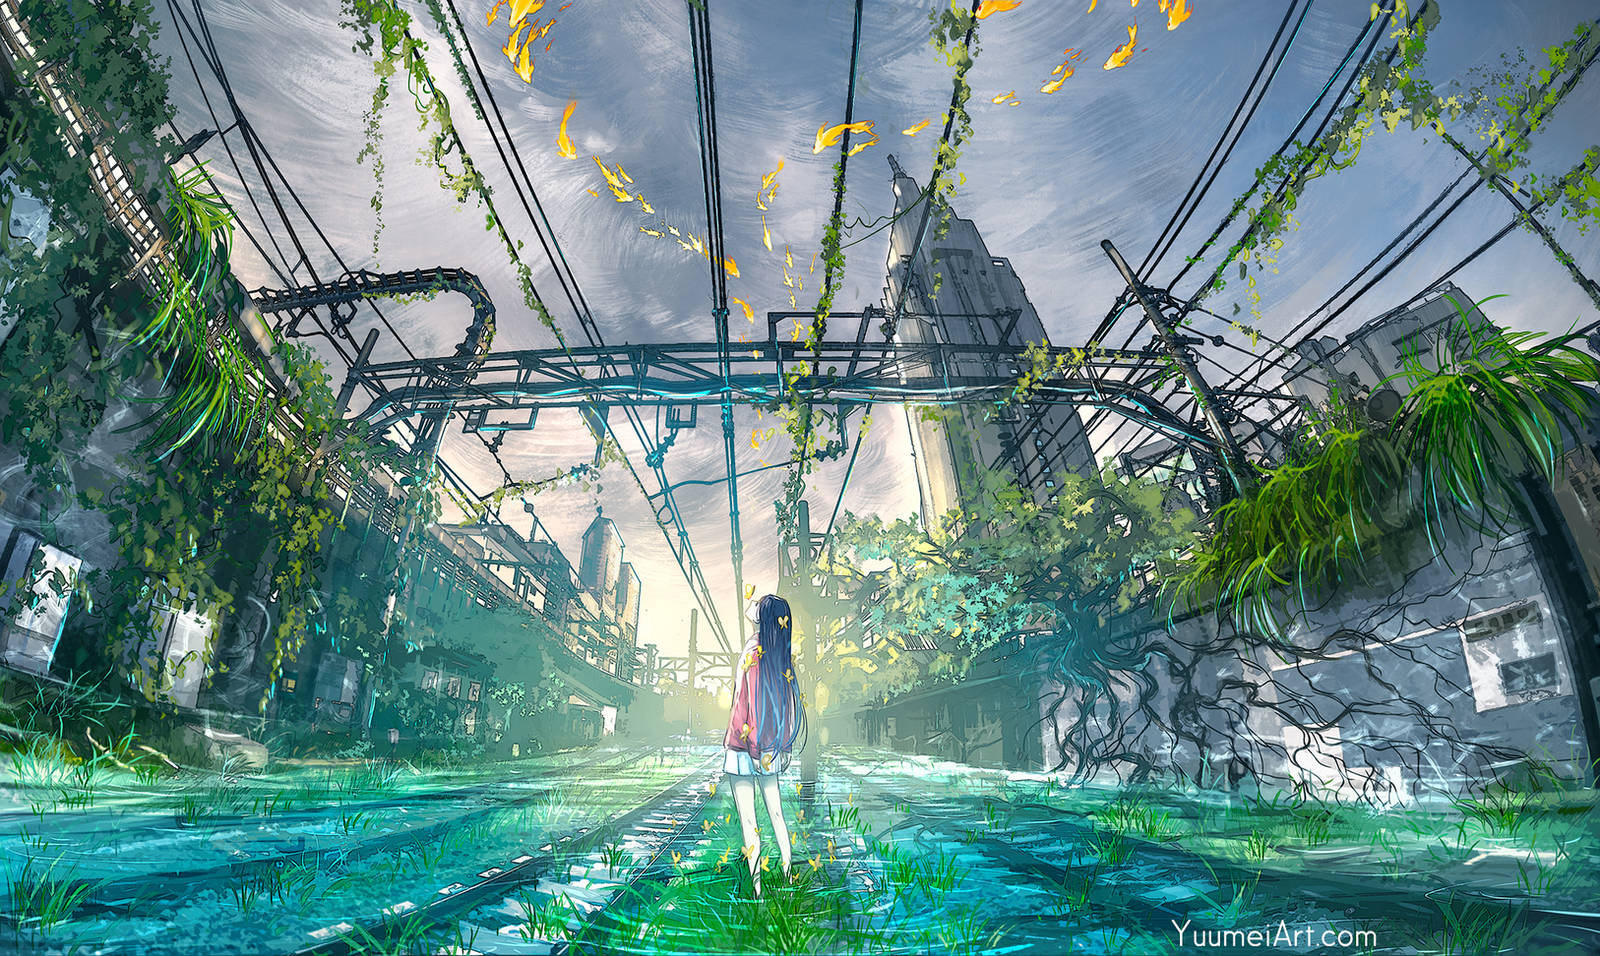 When the Rain Passes by yuumei